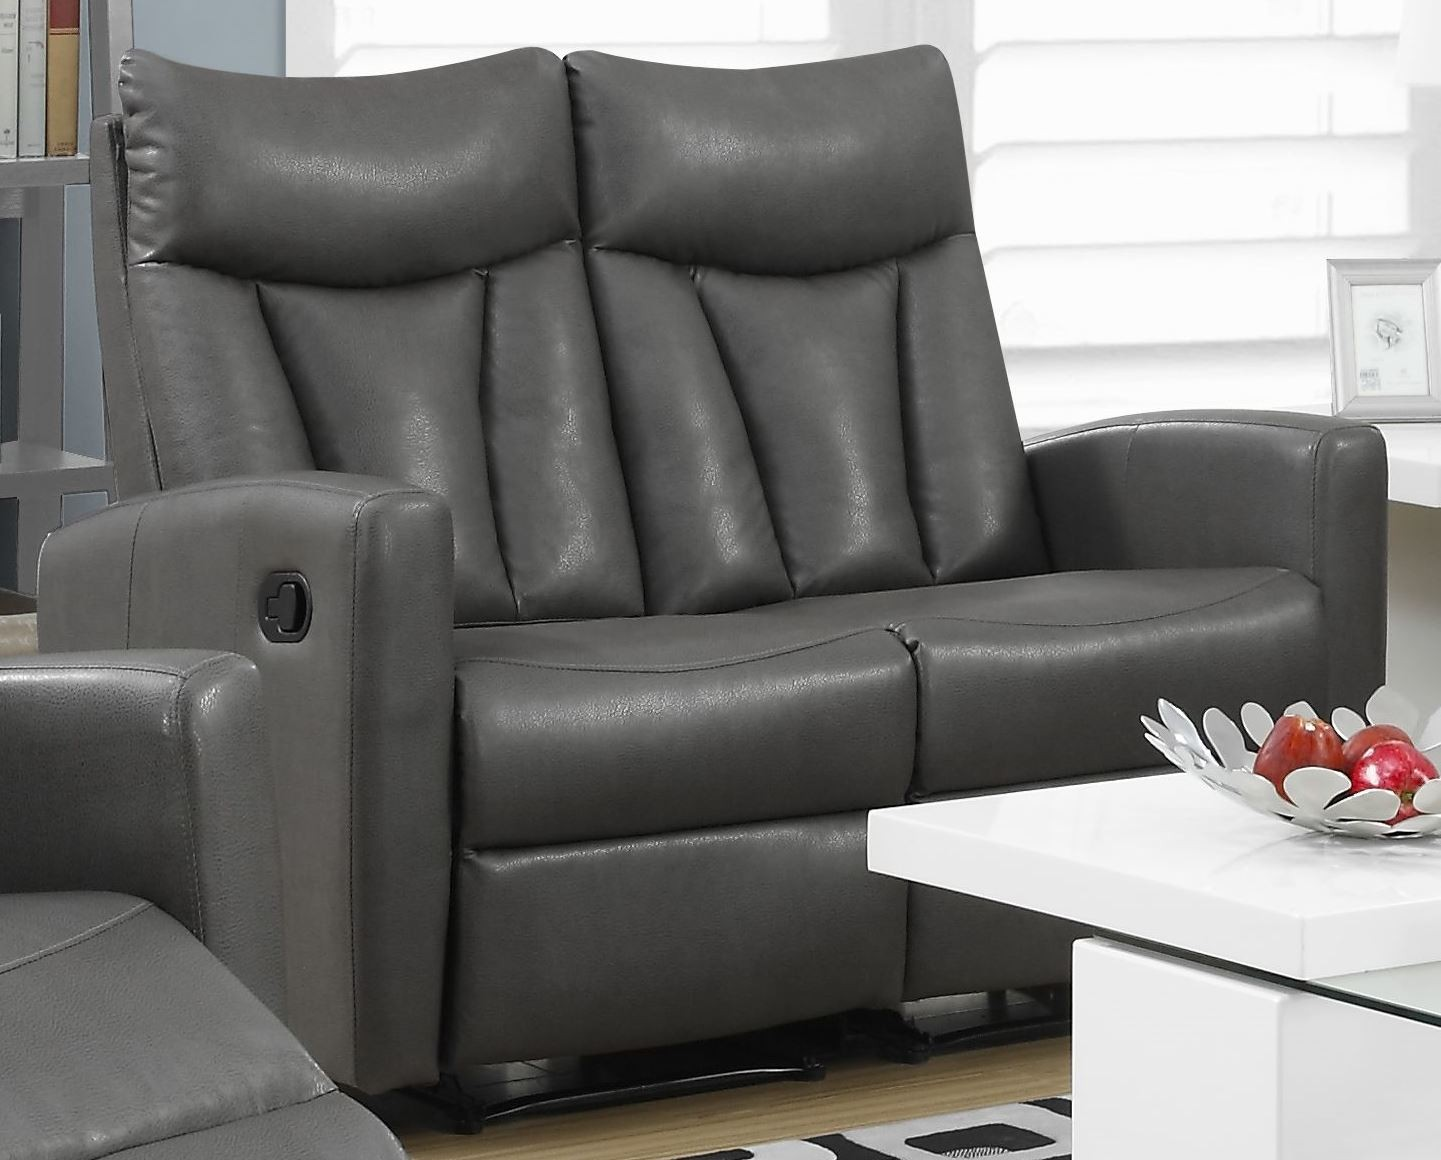 87gy 2 Charcoal Gray Bonded Leather Reclining Loveseat